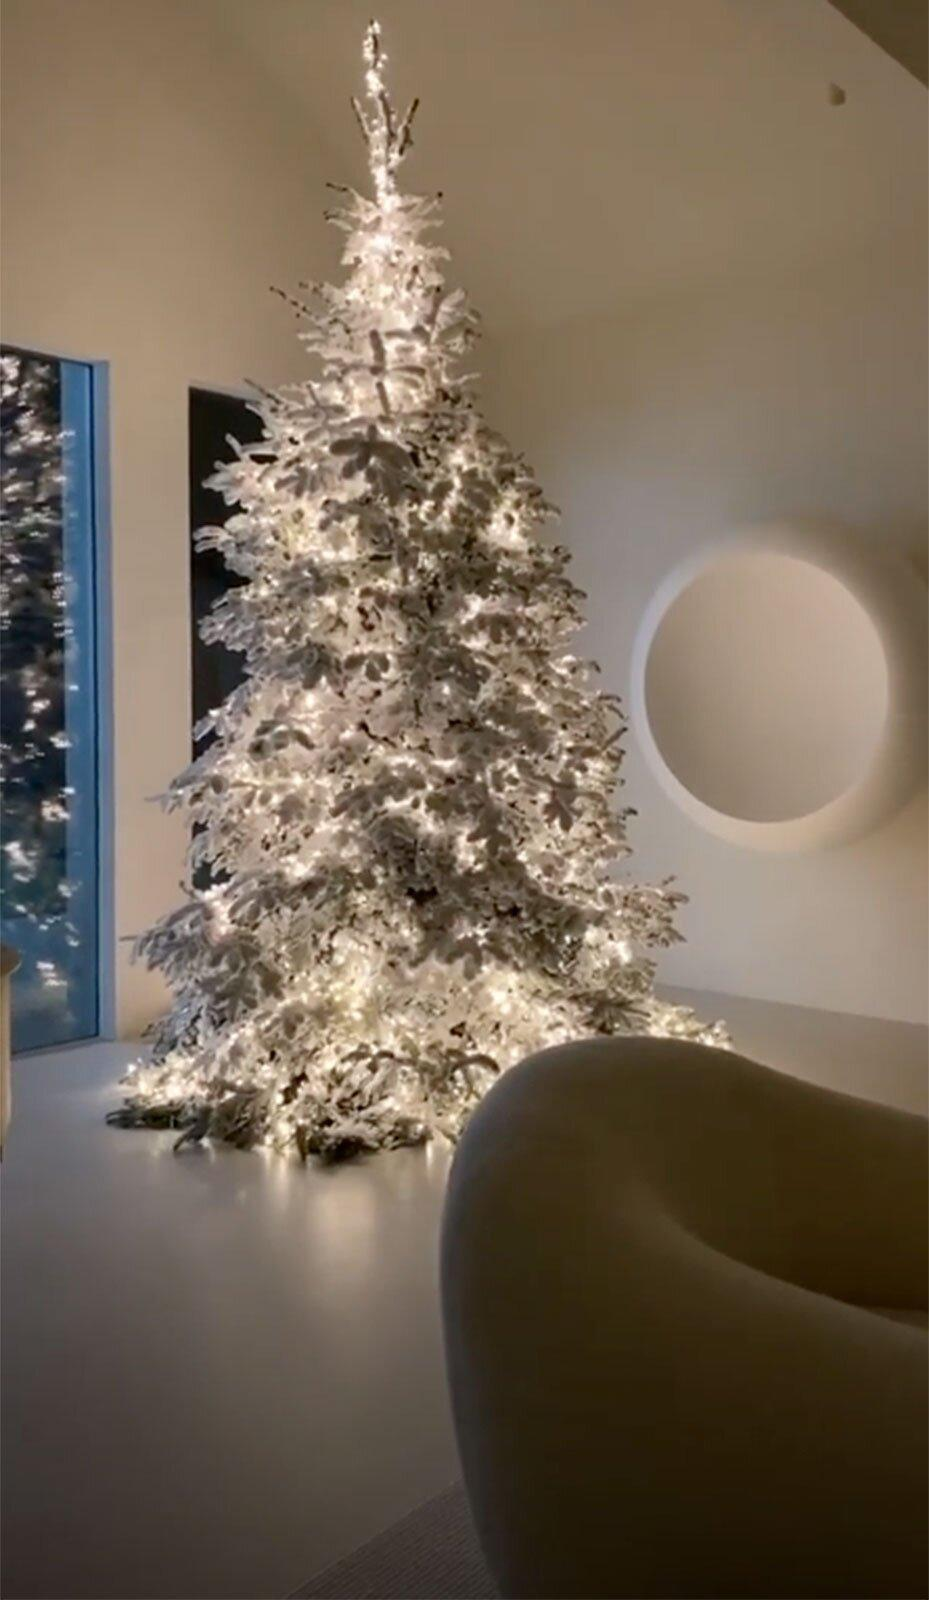 Evergreen is not a shade found in Kim's decor, so her Christmas tree was sprayed white before being strung with white lights.